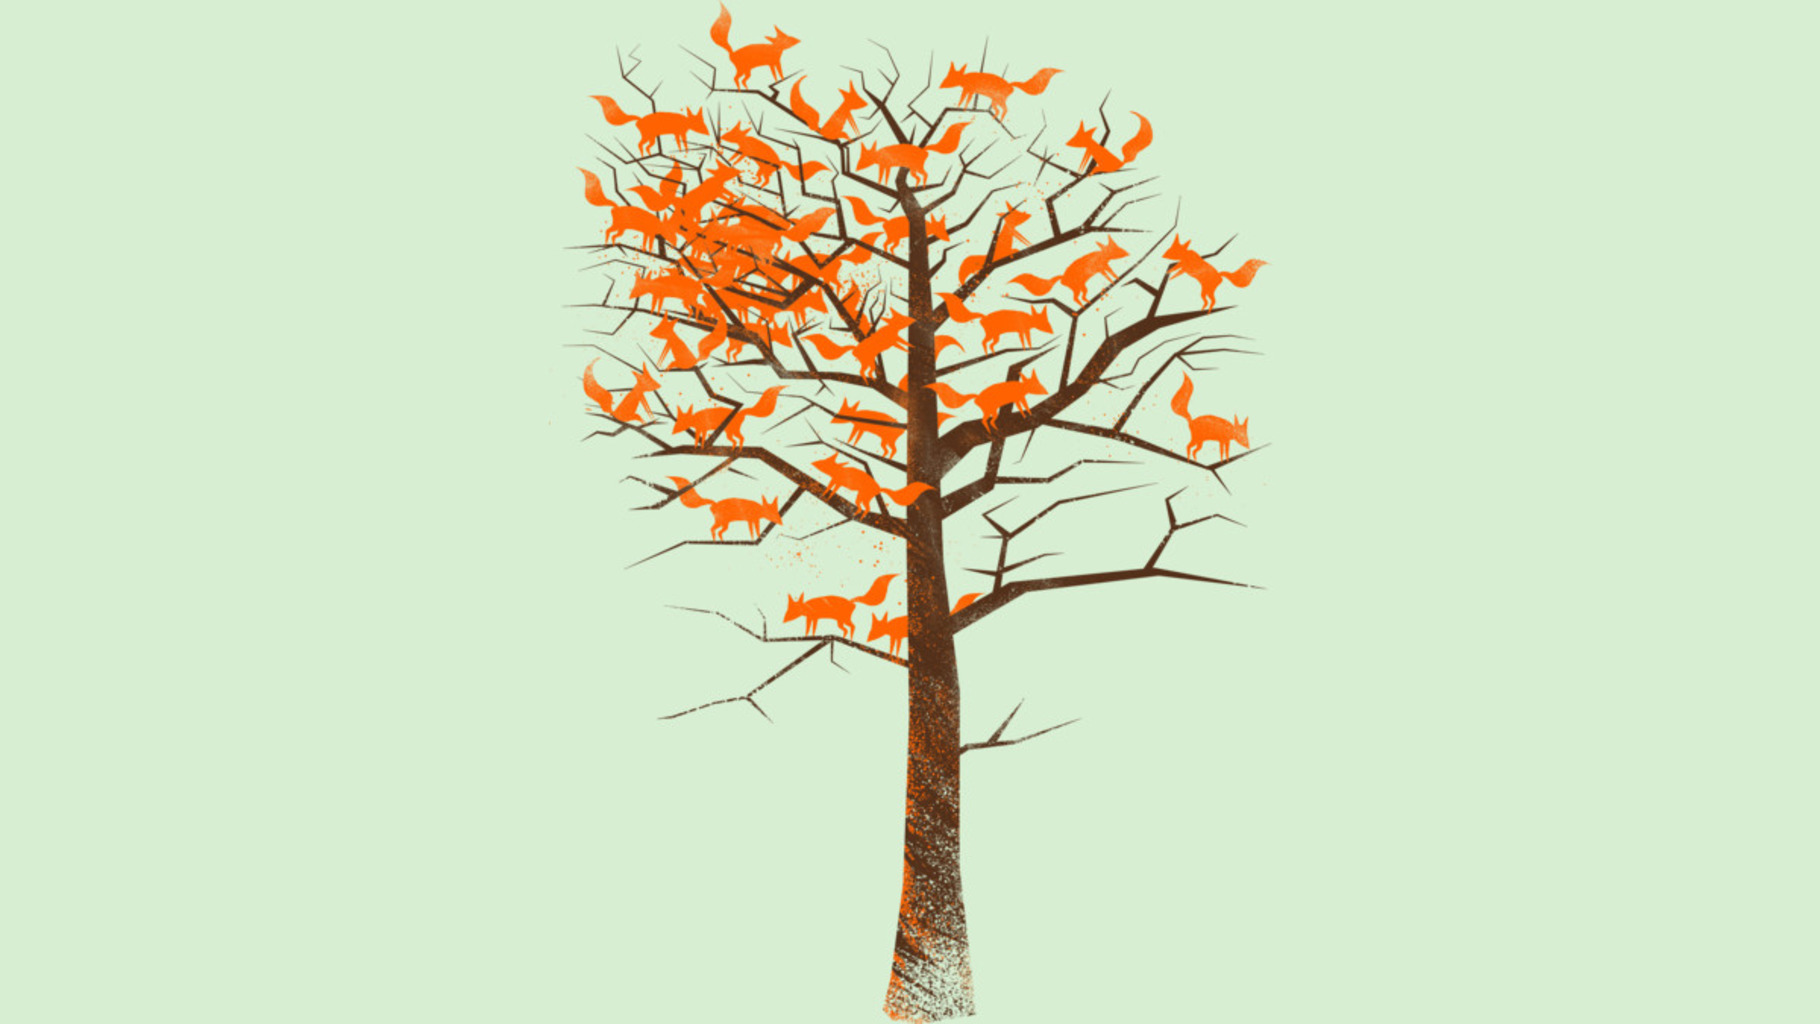 Design by Humans: Blazing Fox Tree